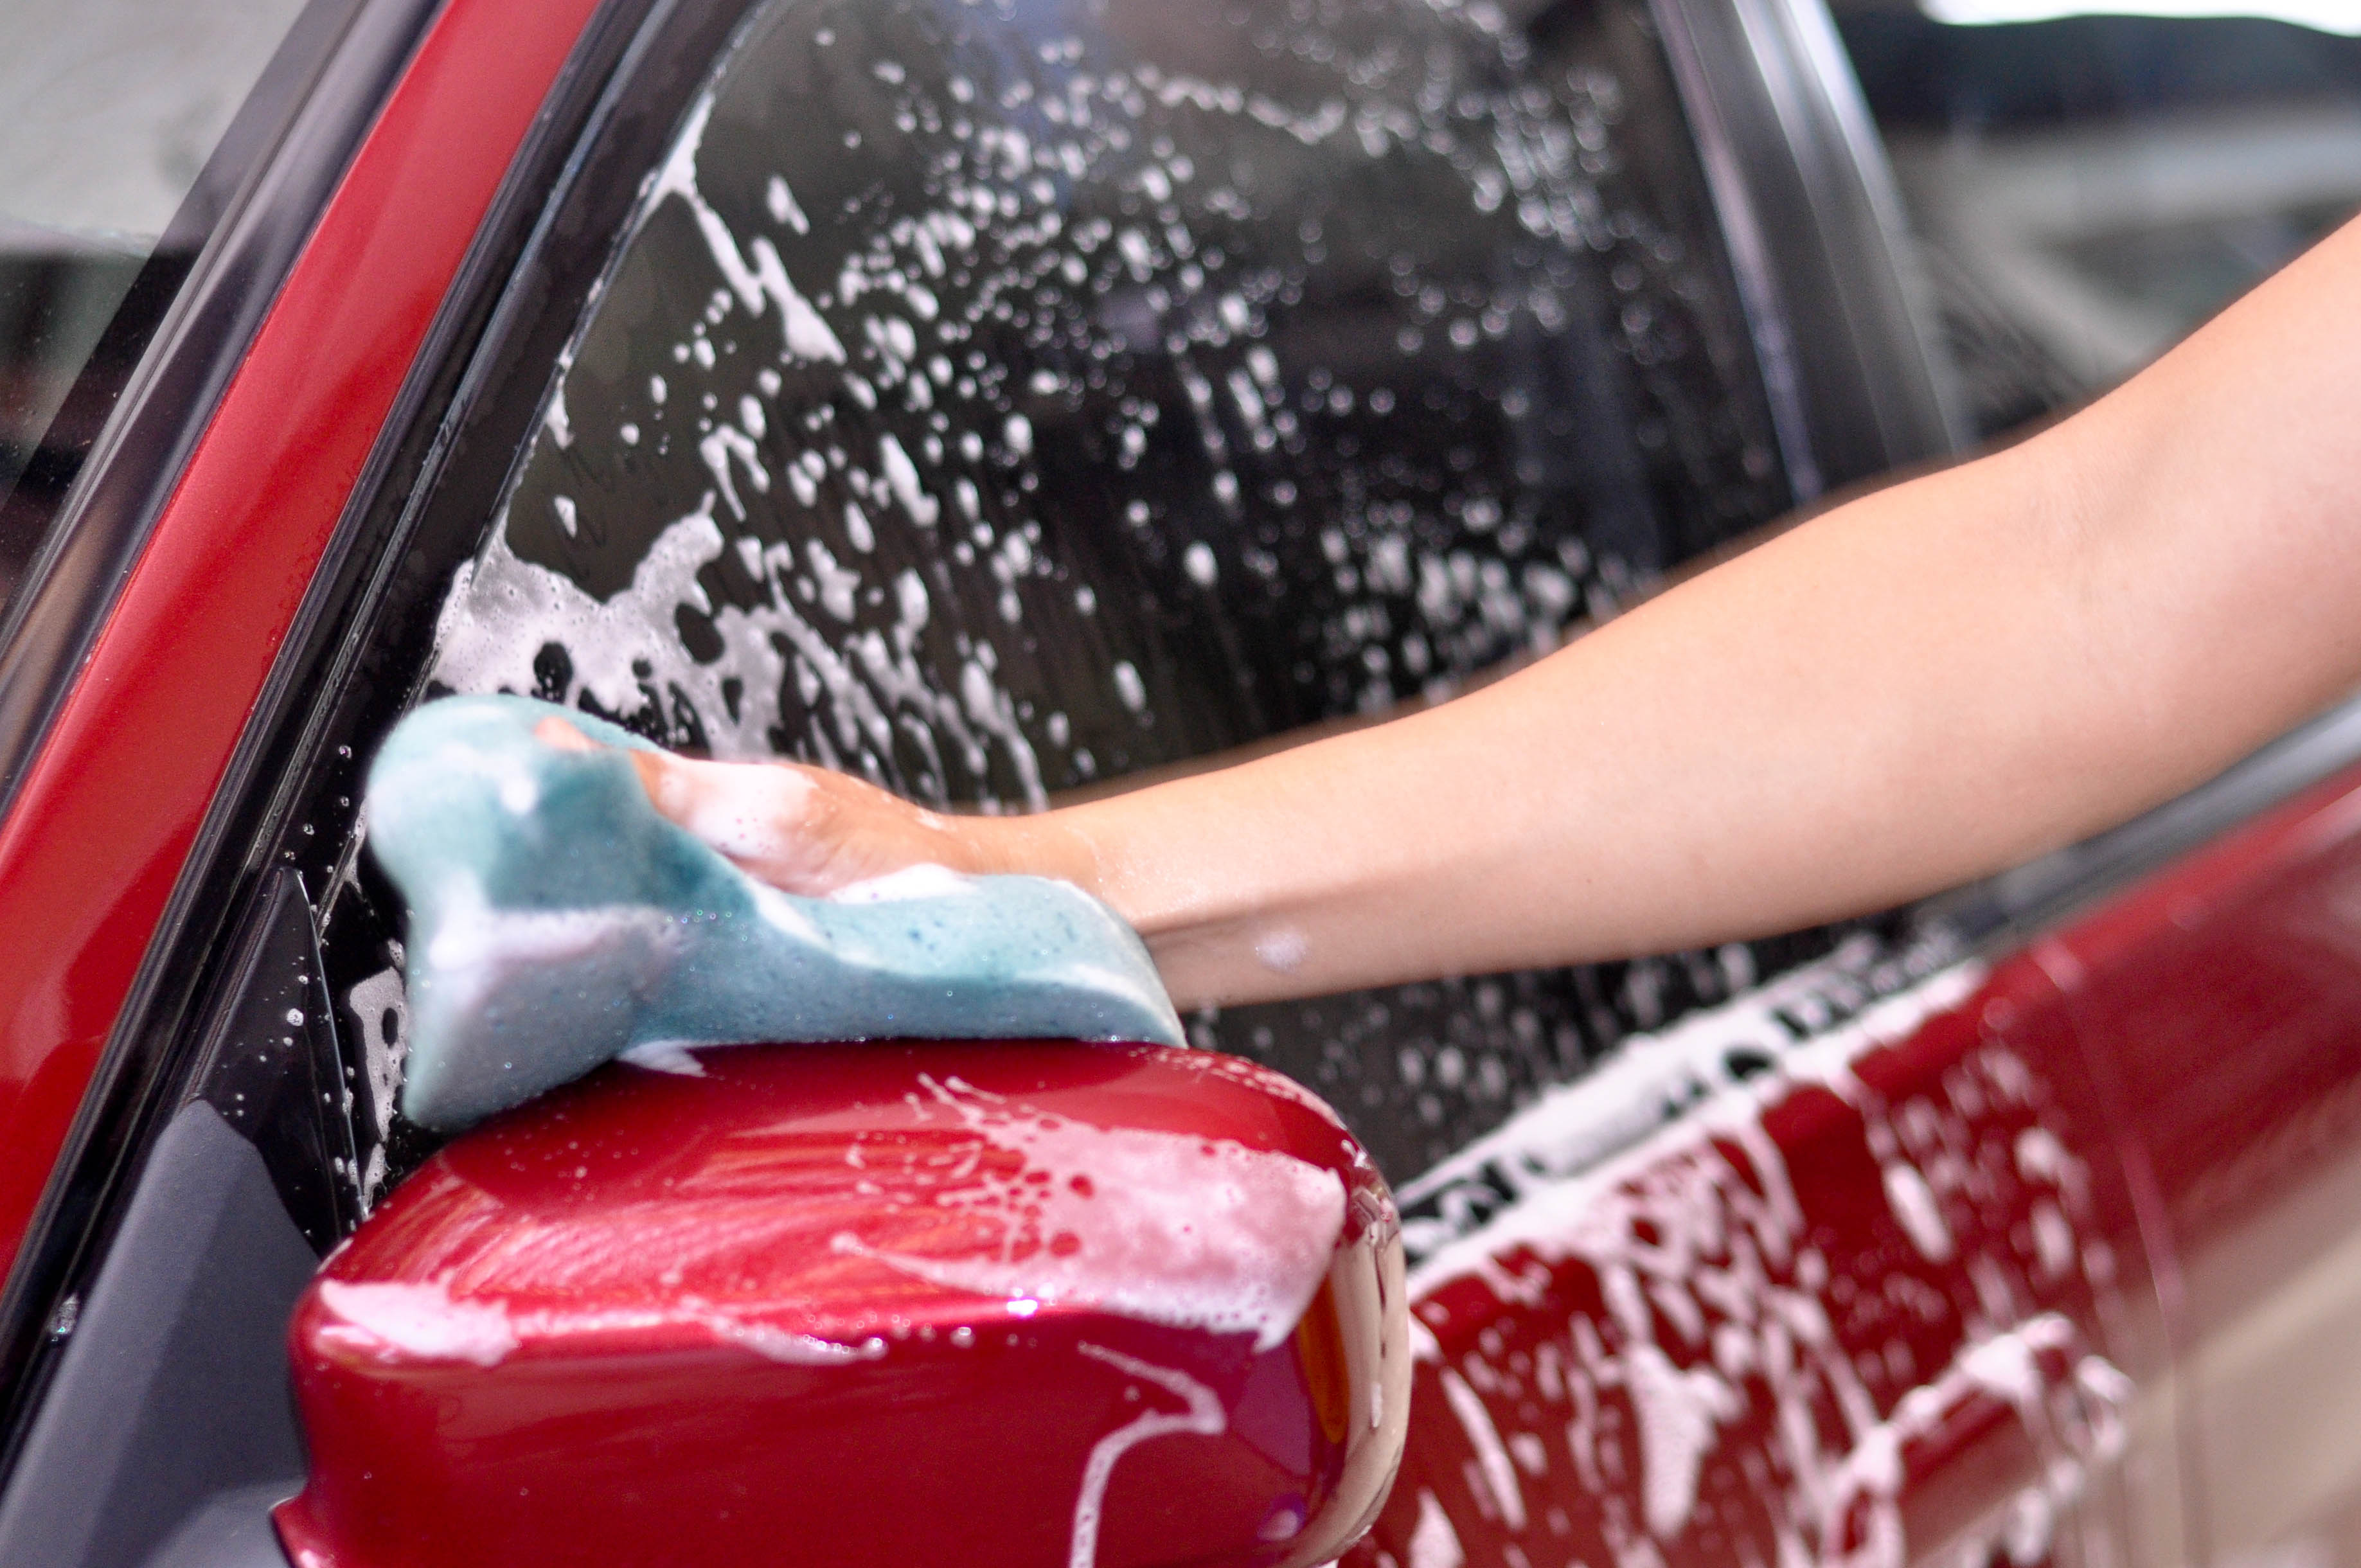 protect your car paint, wash car, wax car, car care